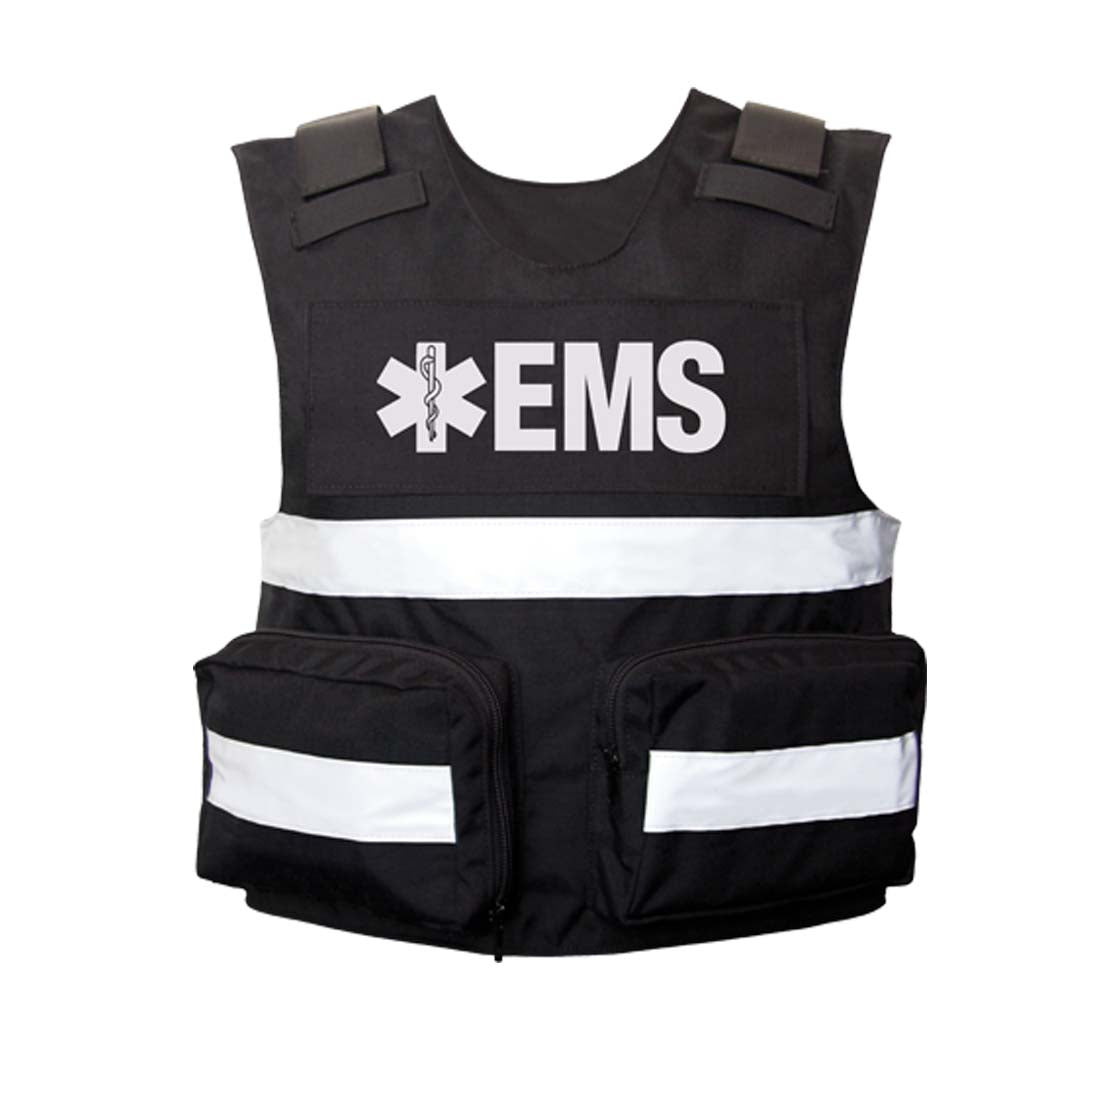 EMS Carrier -  Concealable Body Armor